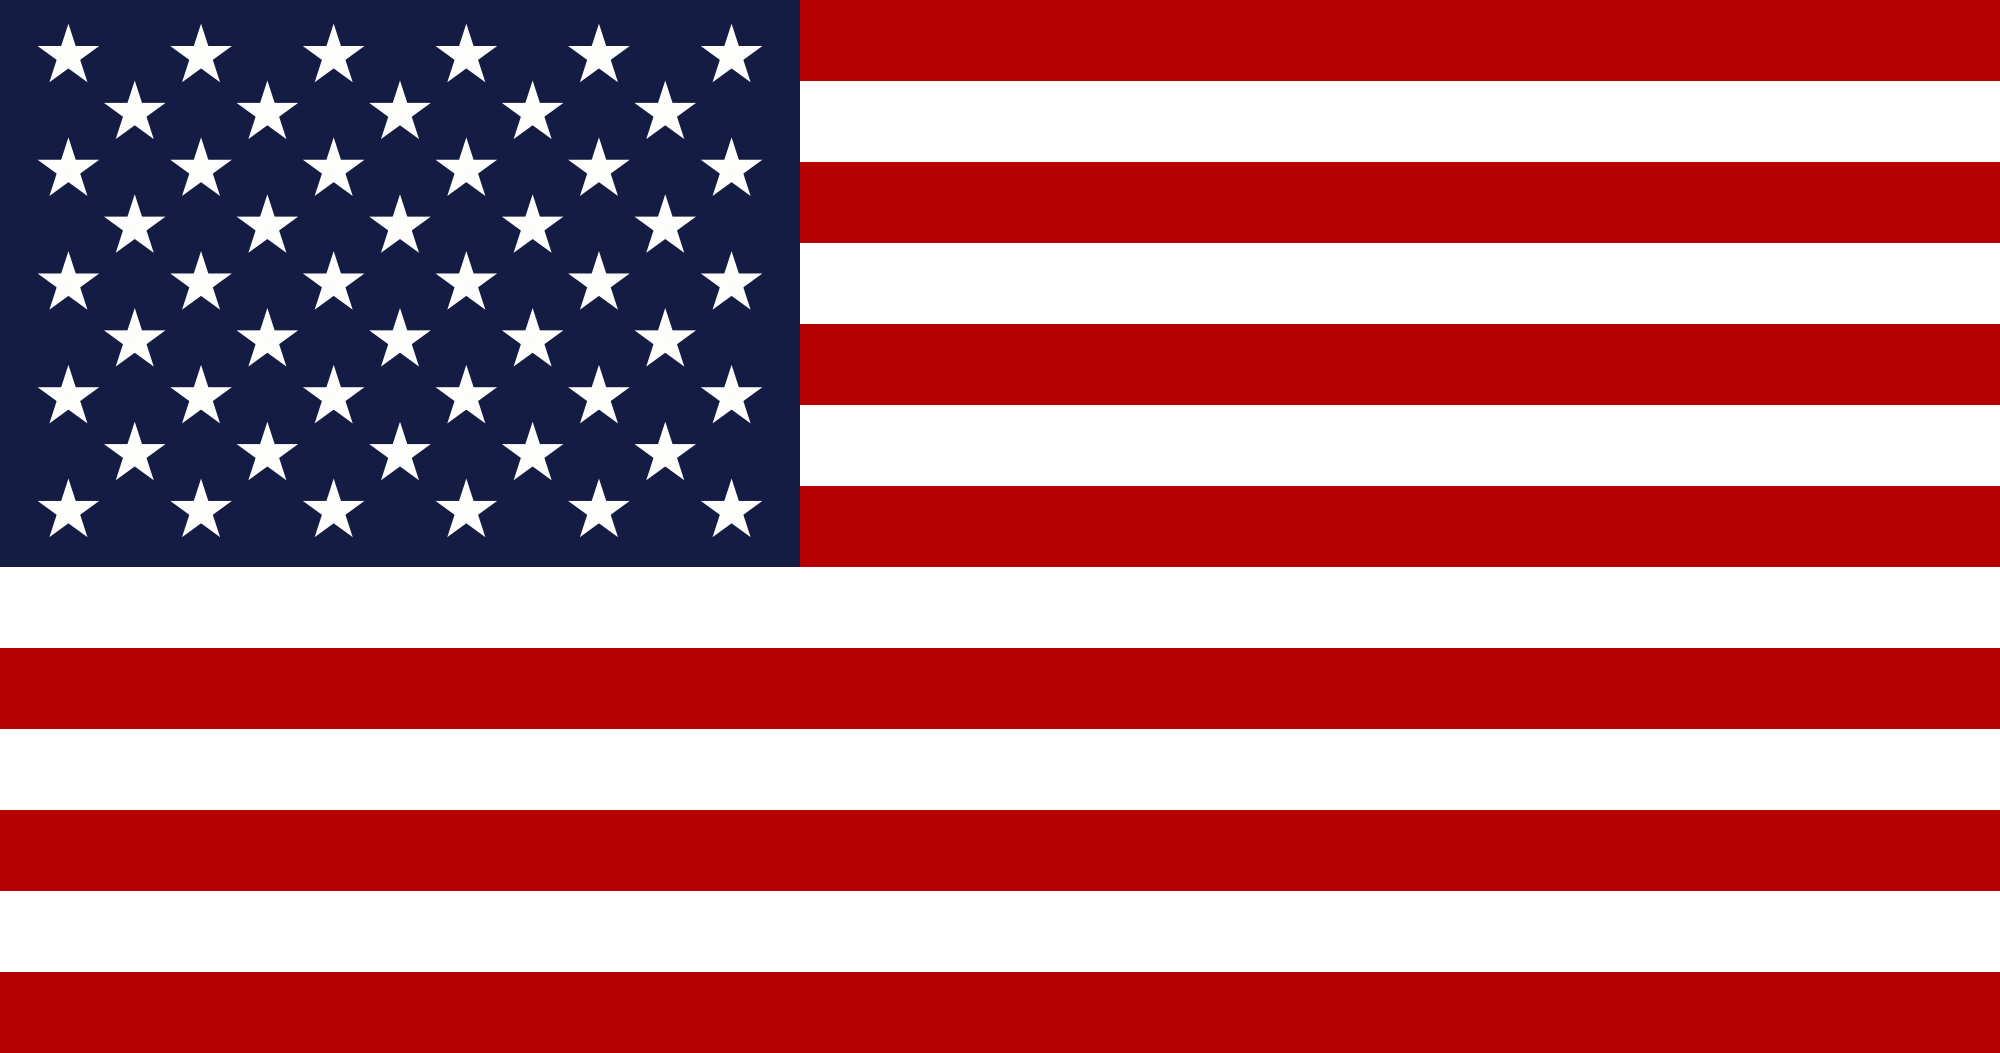 File:Flag Of The United States Recolored.png - United States PNG